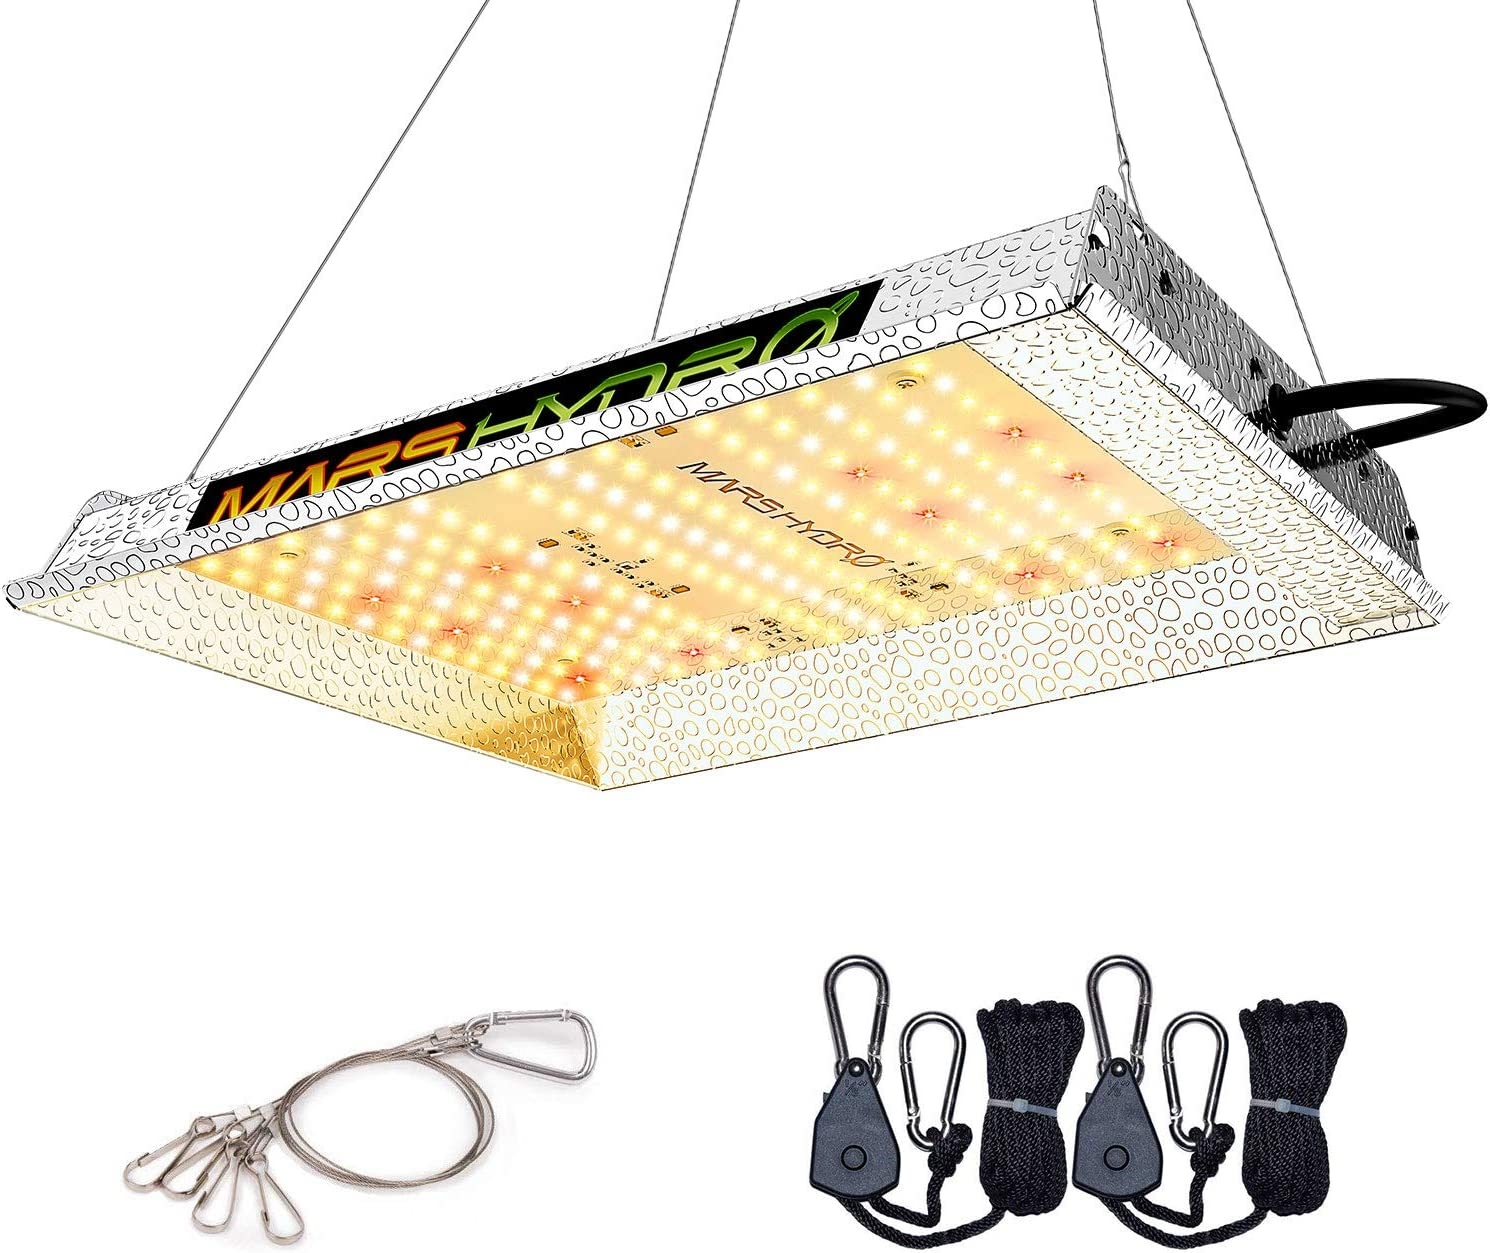 Mars Hydro TS 600W Sunlike Full-Spectrum LED Grow Light